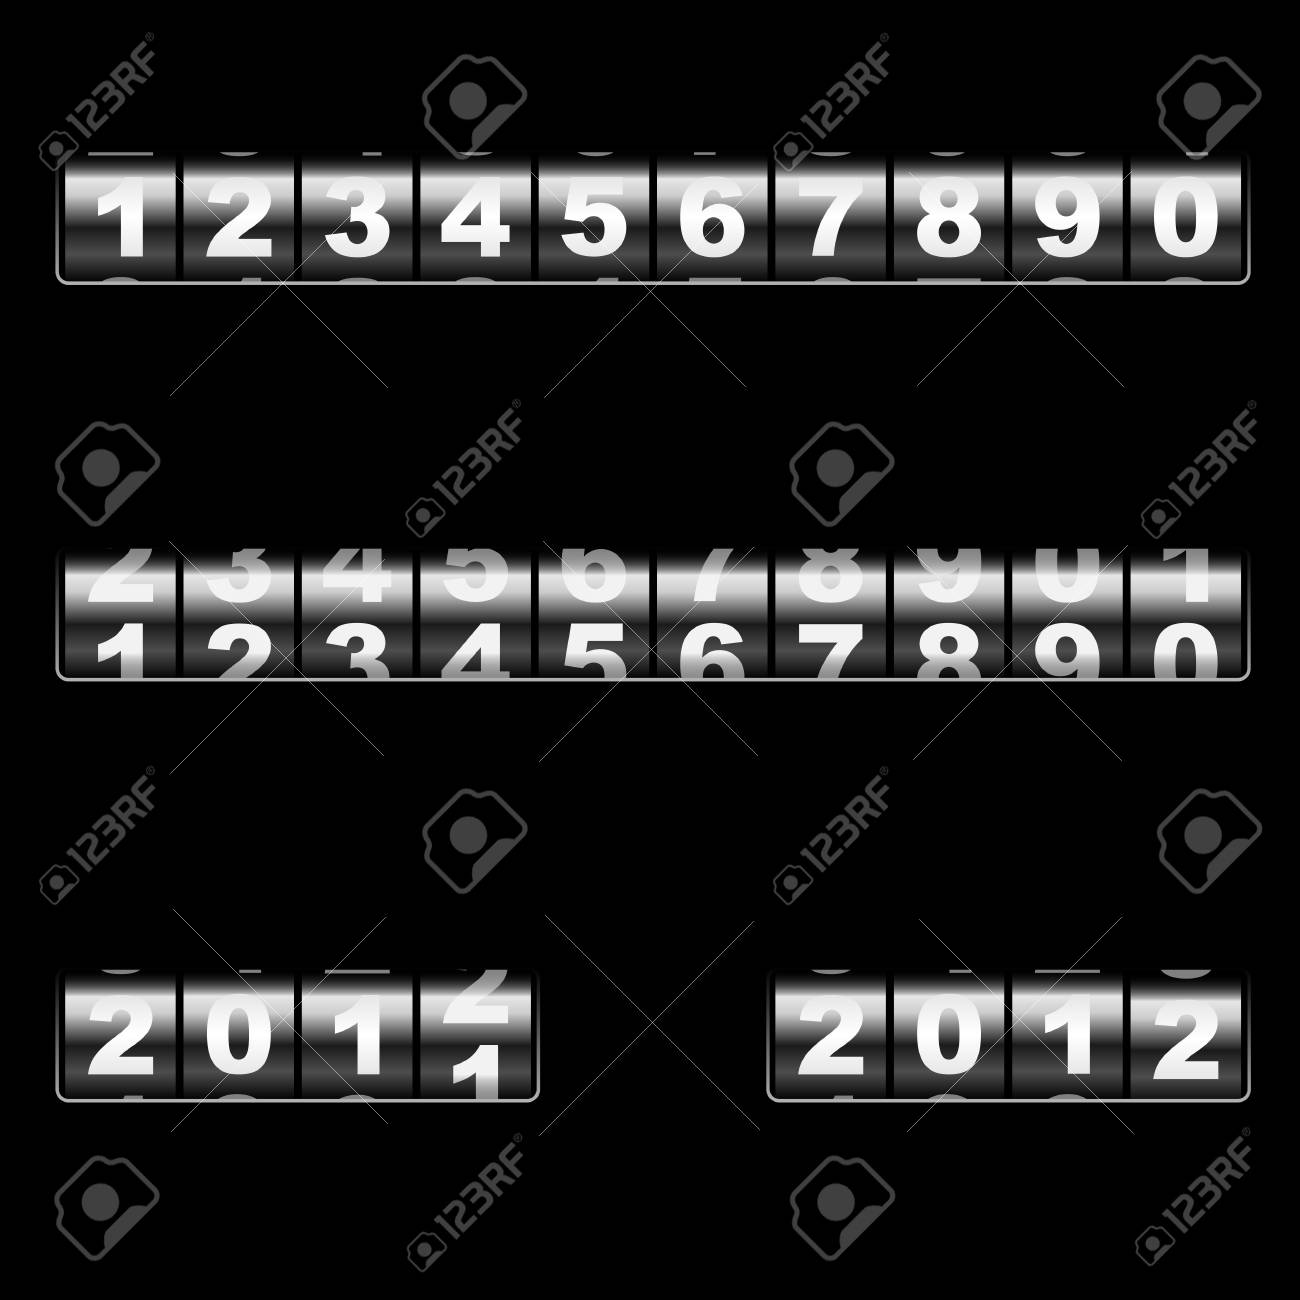 Out-dated universal mechanical counter template with two examples of usage  changing 2011 to 2012 year and 2012 year  Easy to edit and combine any numbers Stock Vector - 19975498